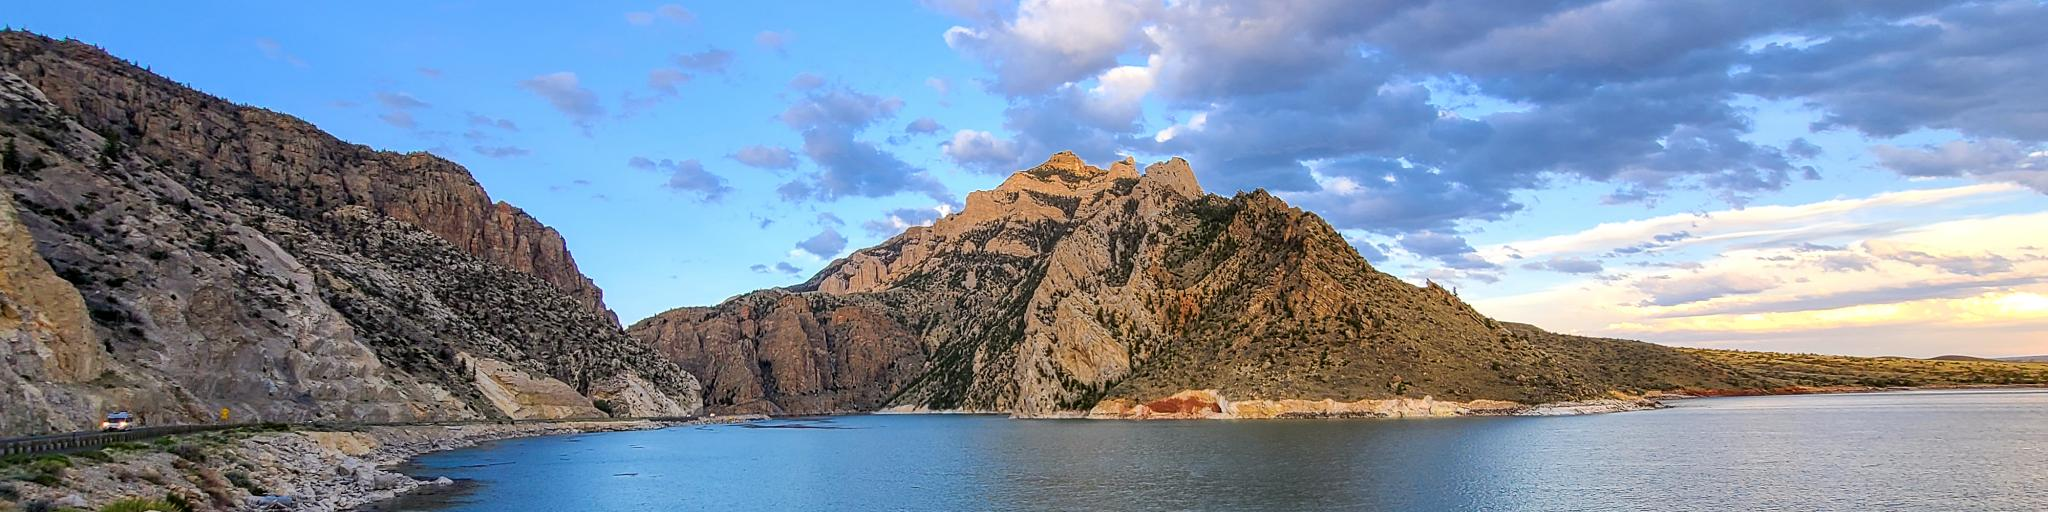 View of a lake and mountain on the approach to the East Entrance to Yellowstone National Park, Wyoming.